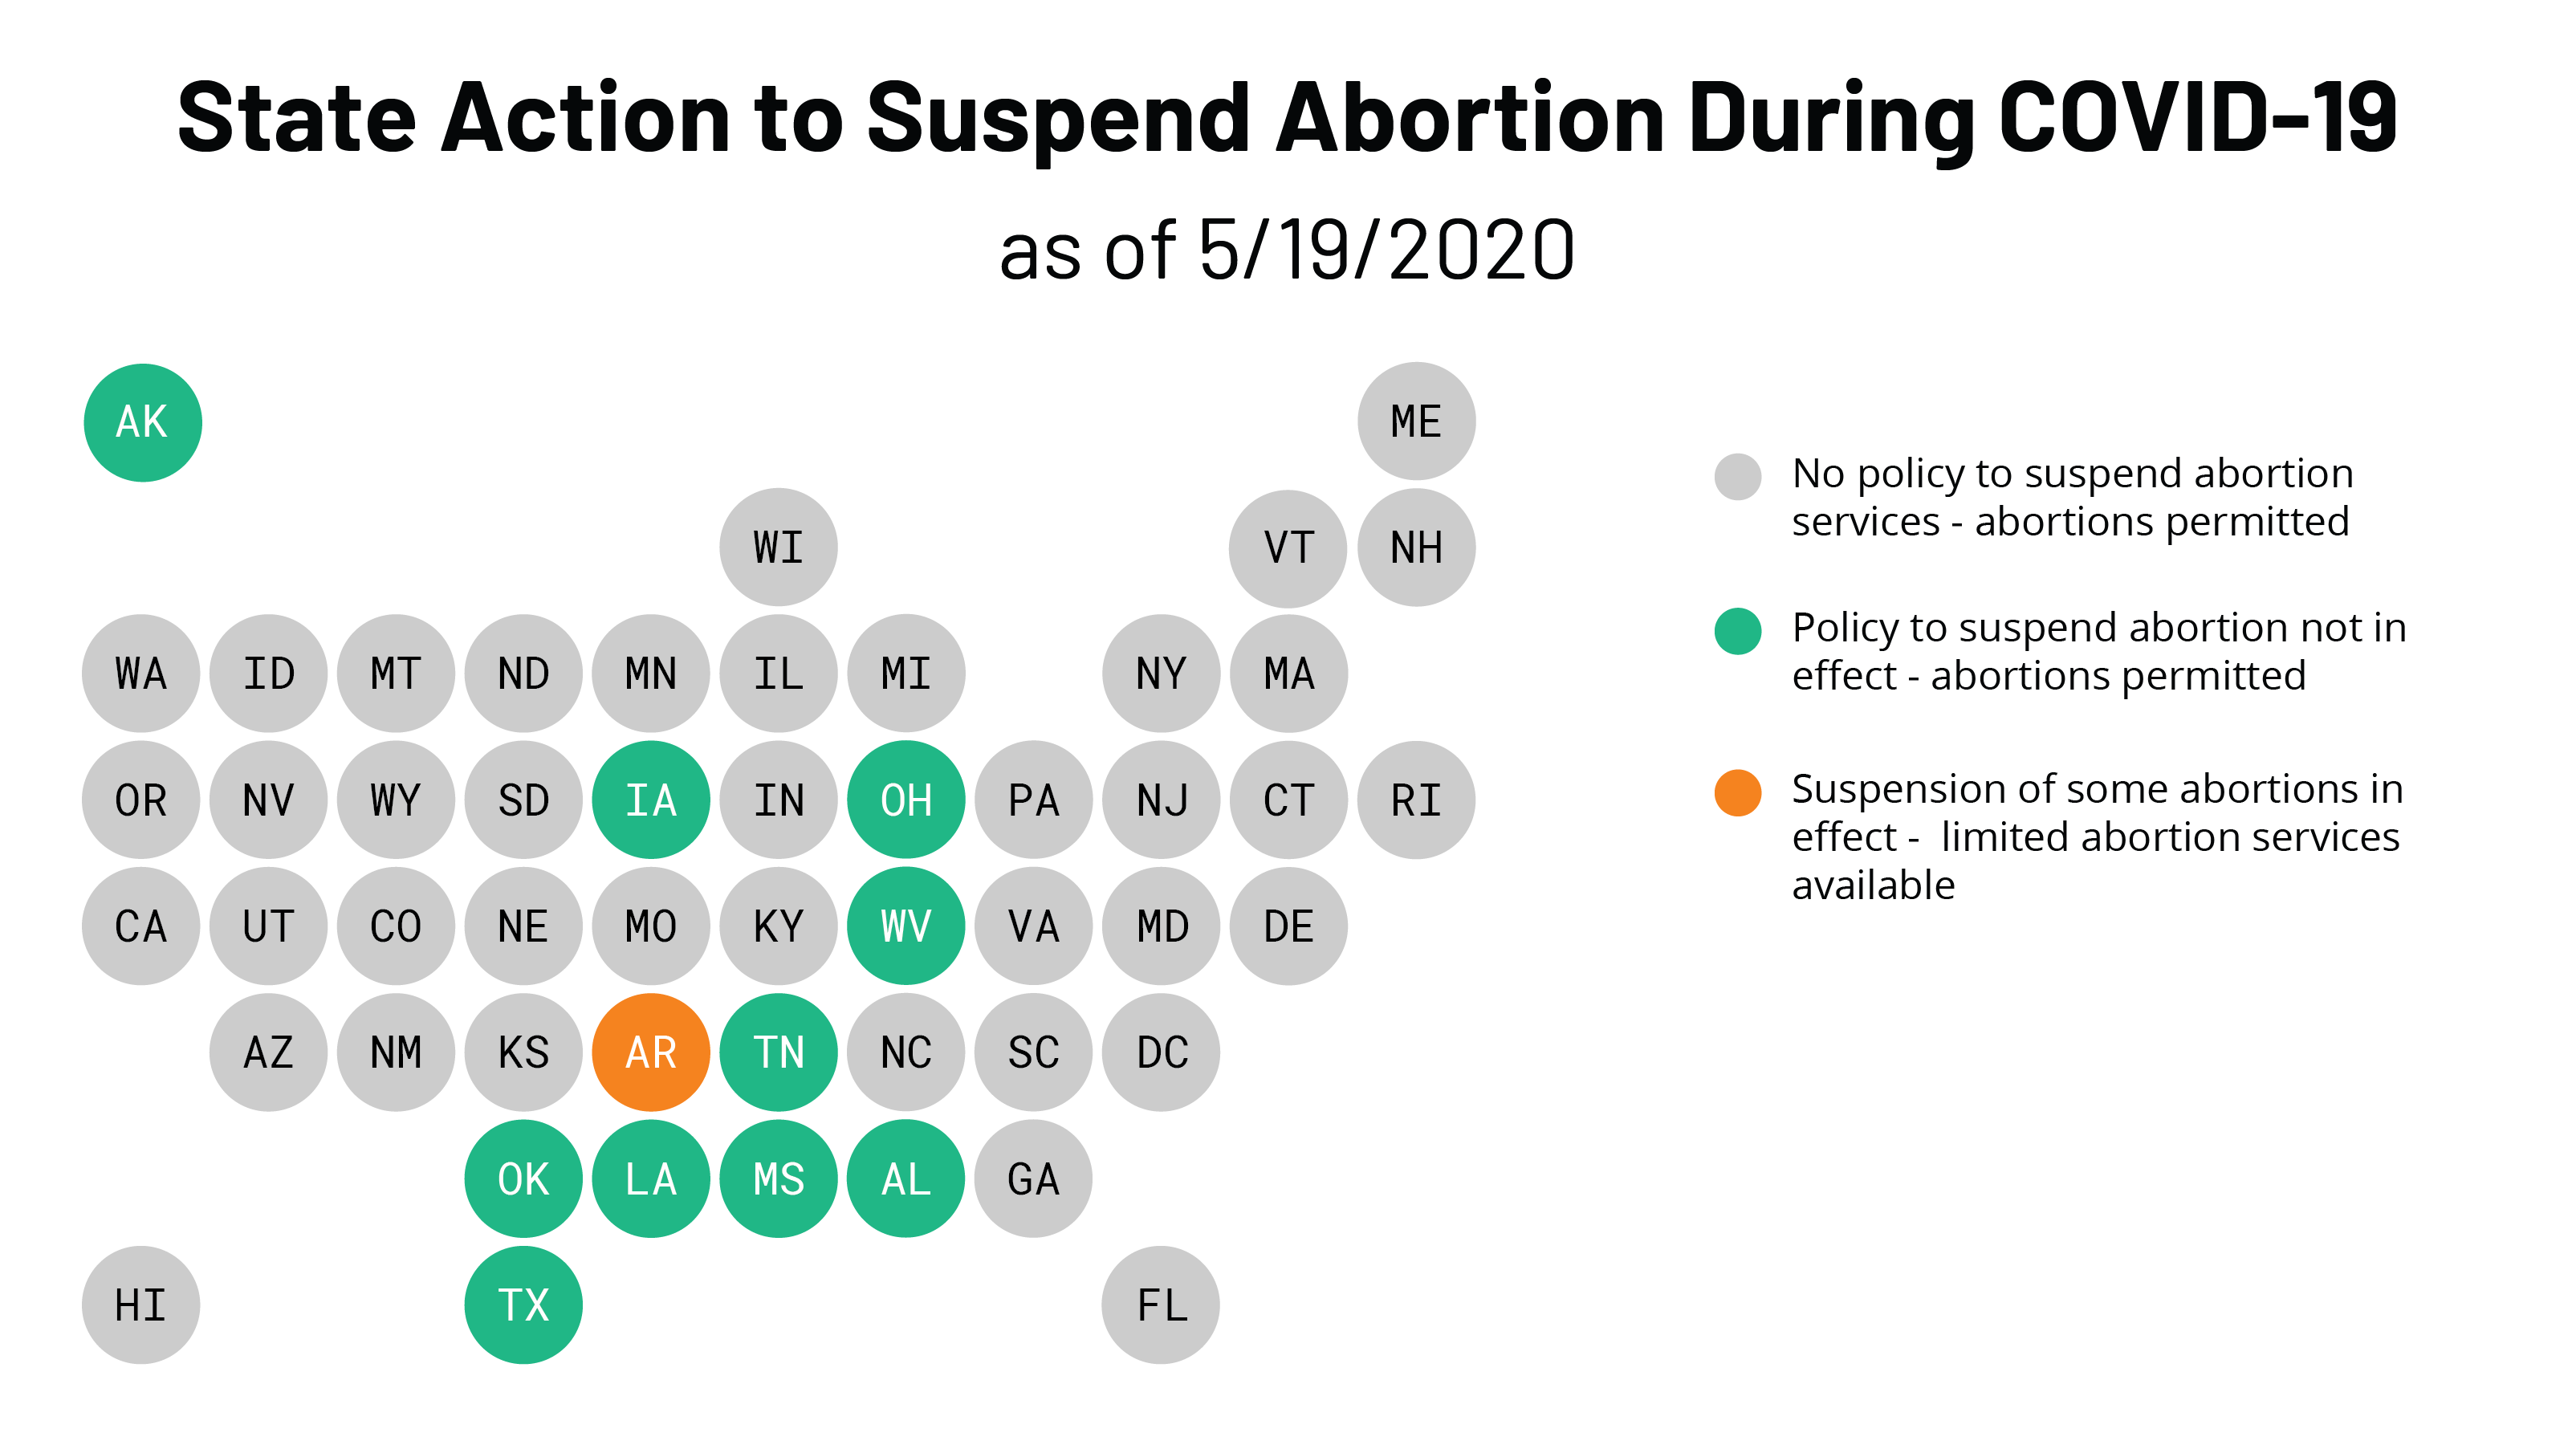 State Action to Limit Abortion Access During the COVID-19 Pandemic